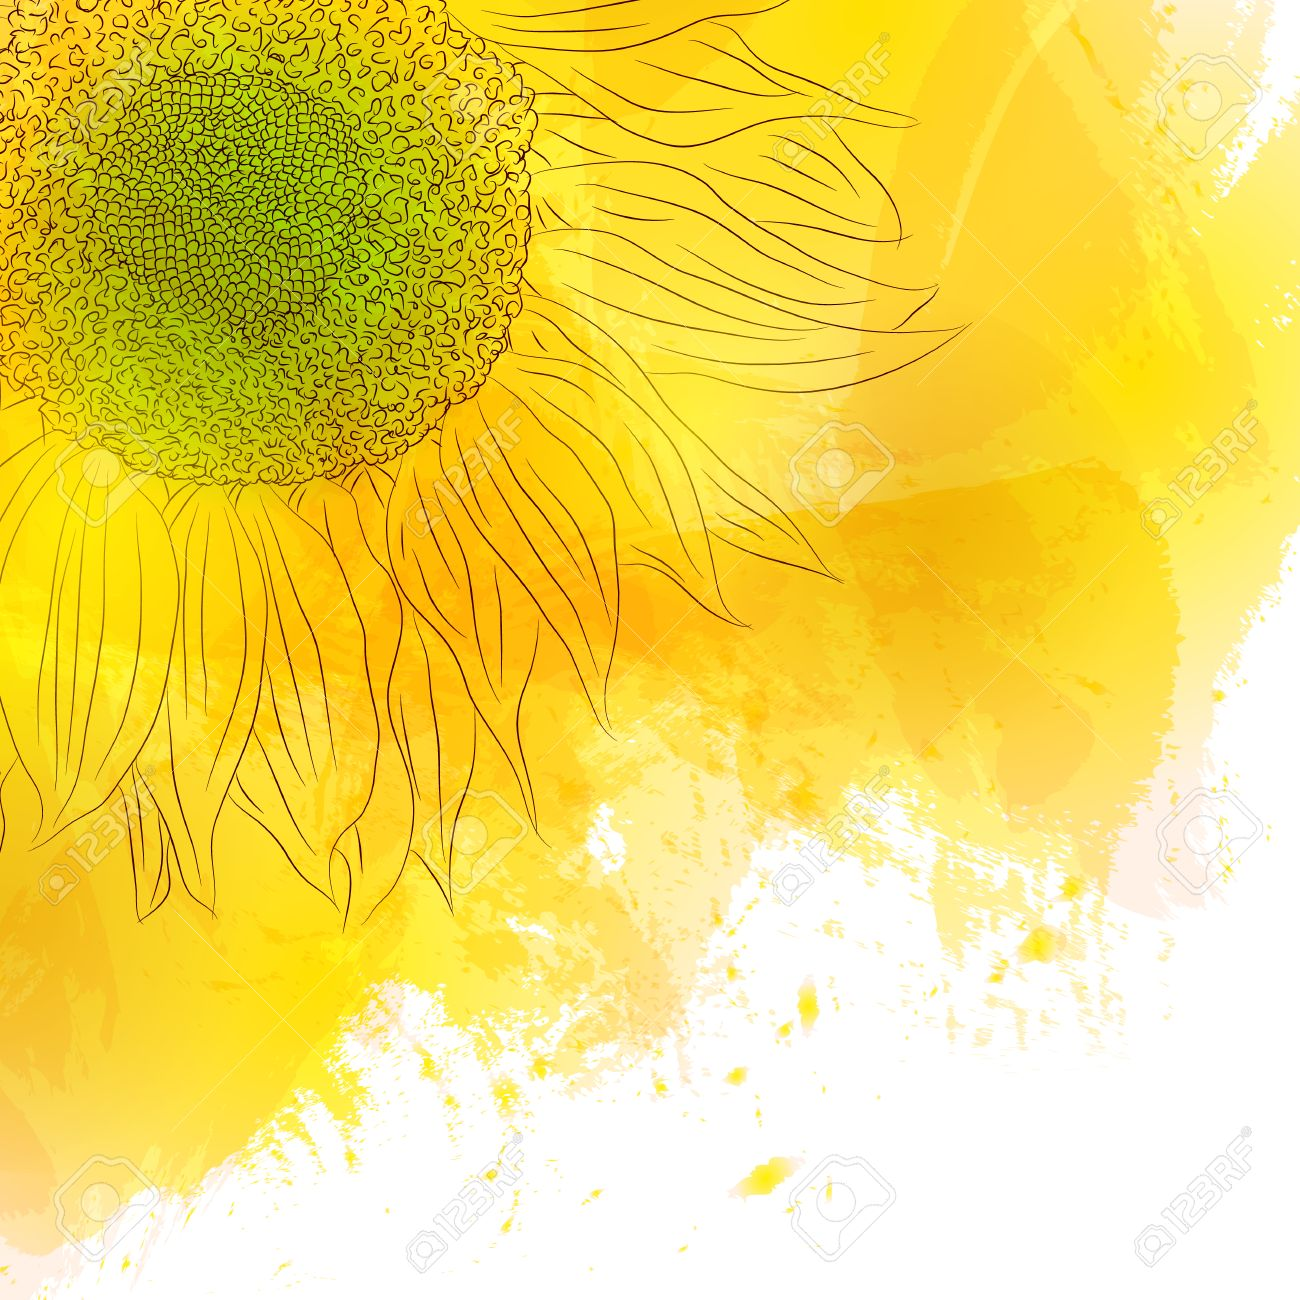 Sunflower bright sunny yellow flower on watercolor background bright sunny yellow flower on watercolor background design for invitation cards birthday with love save the date the spring style vector illustration stopboris Gallery